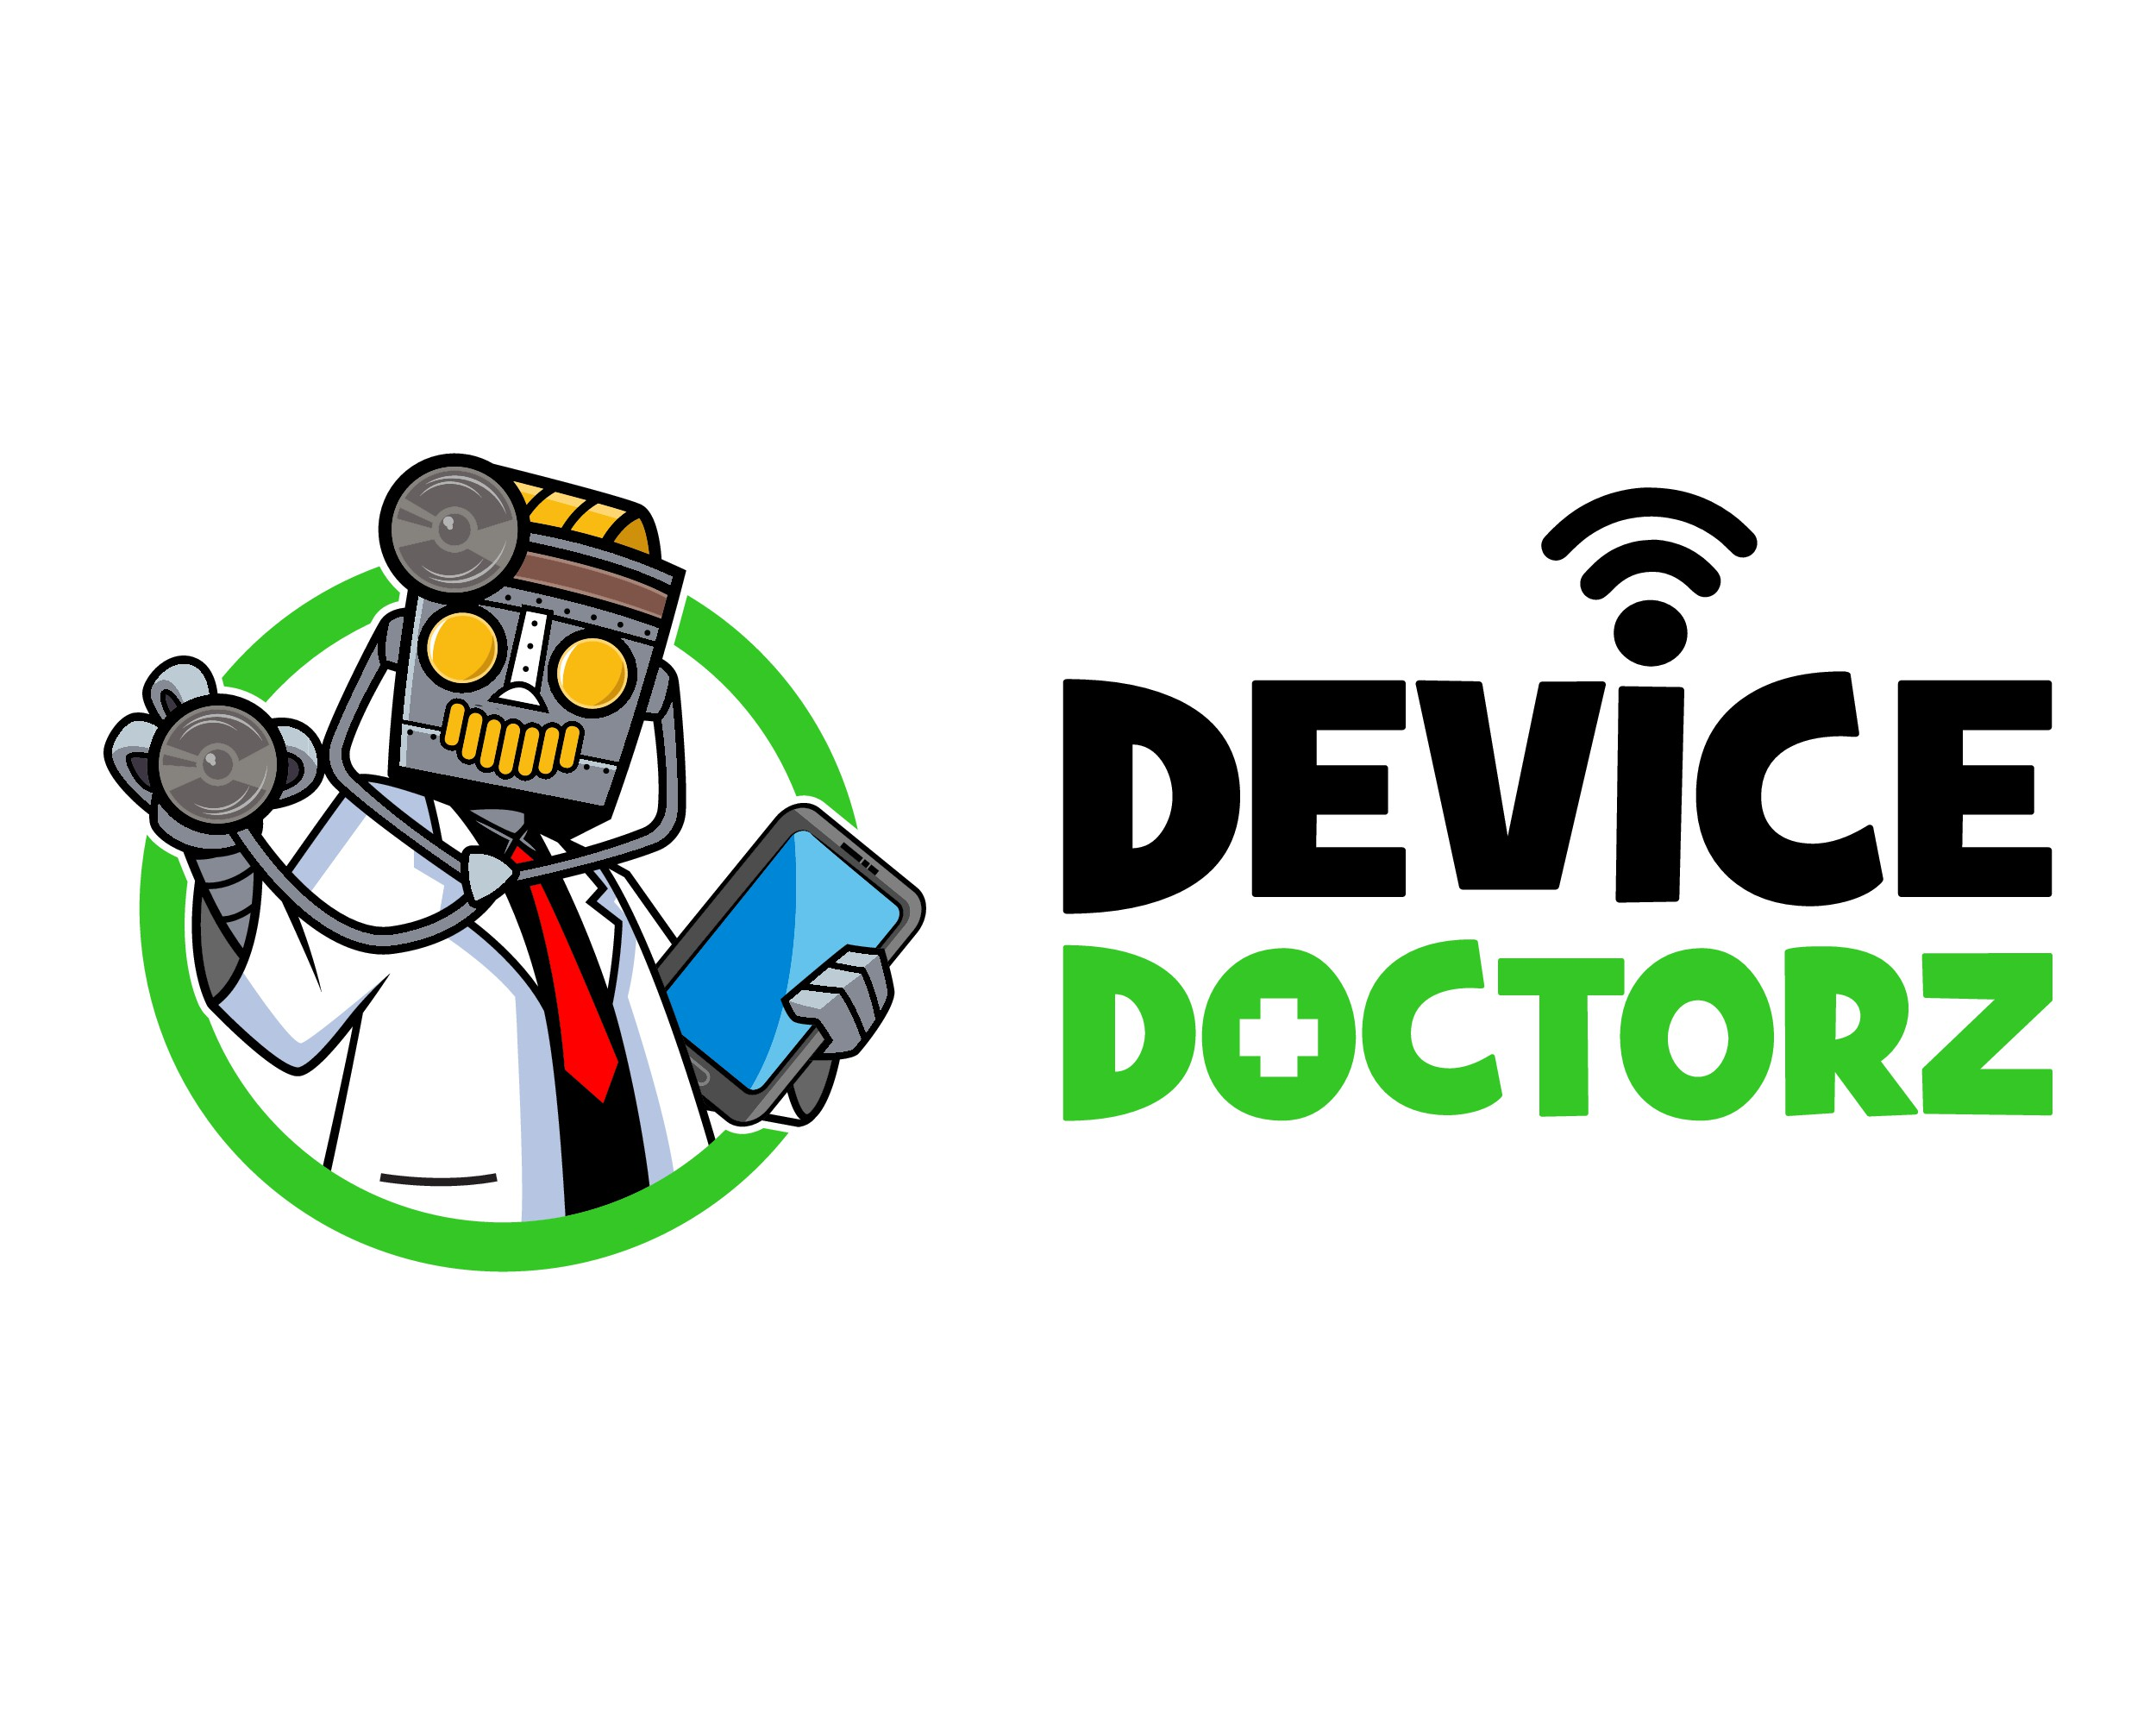 Trendy new brand design - Logo and Mascot - for Device Doctorz